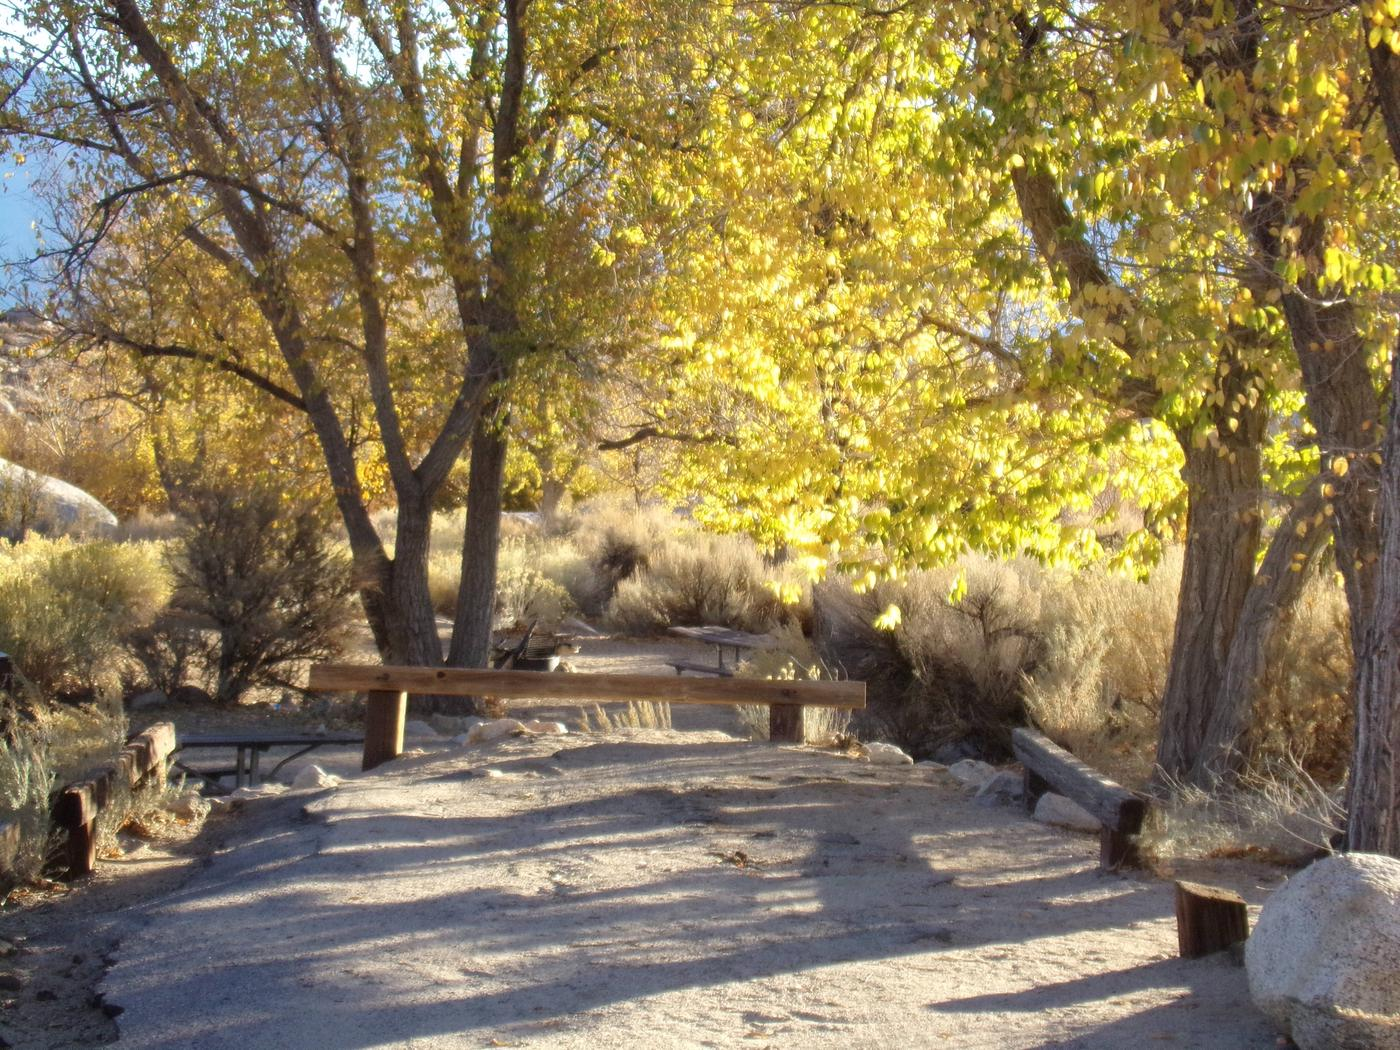 Parking space and entrance to site #14, Lone Pine Campground.